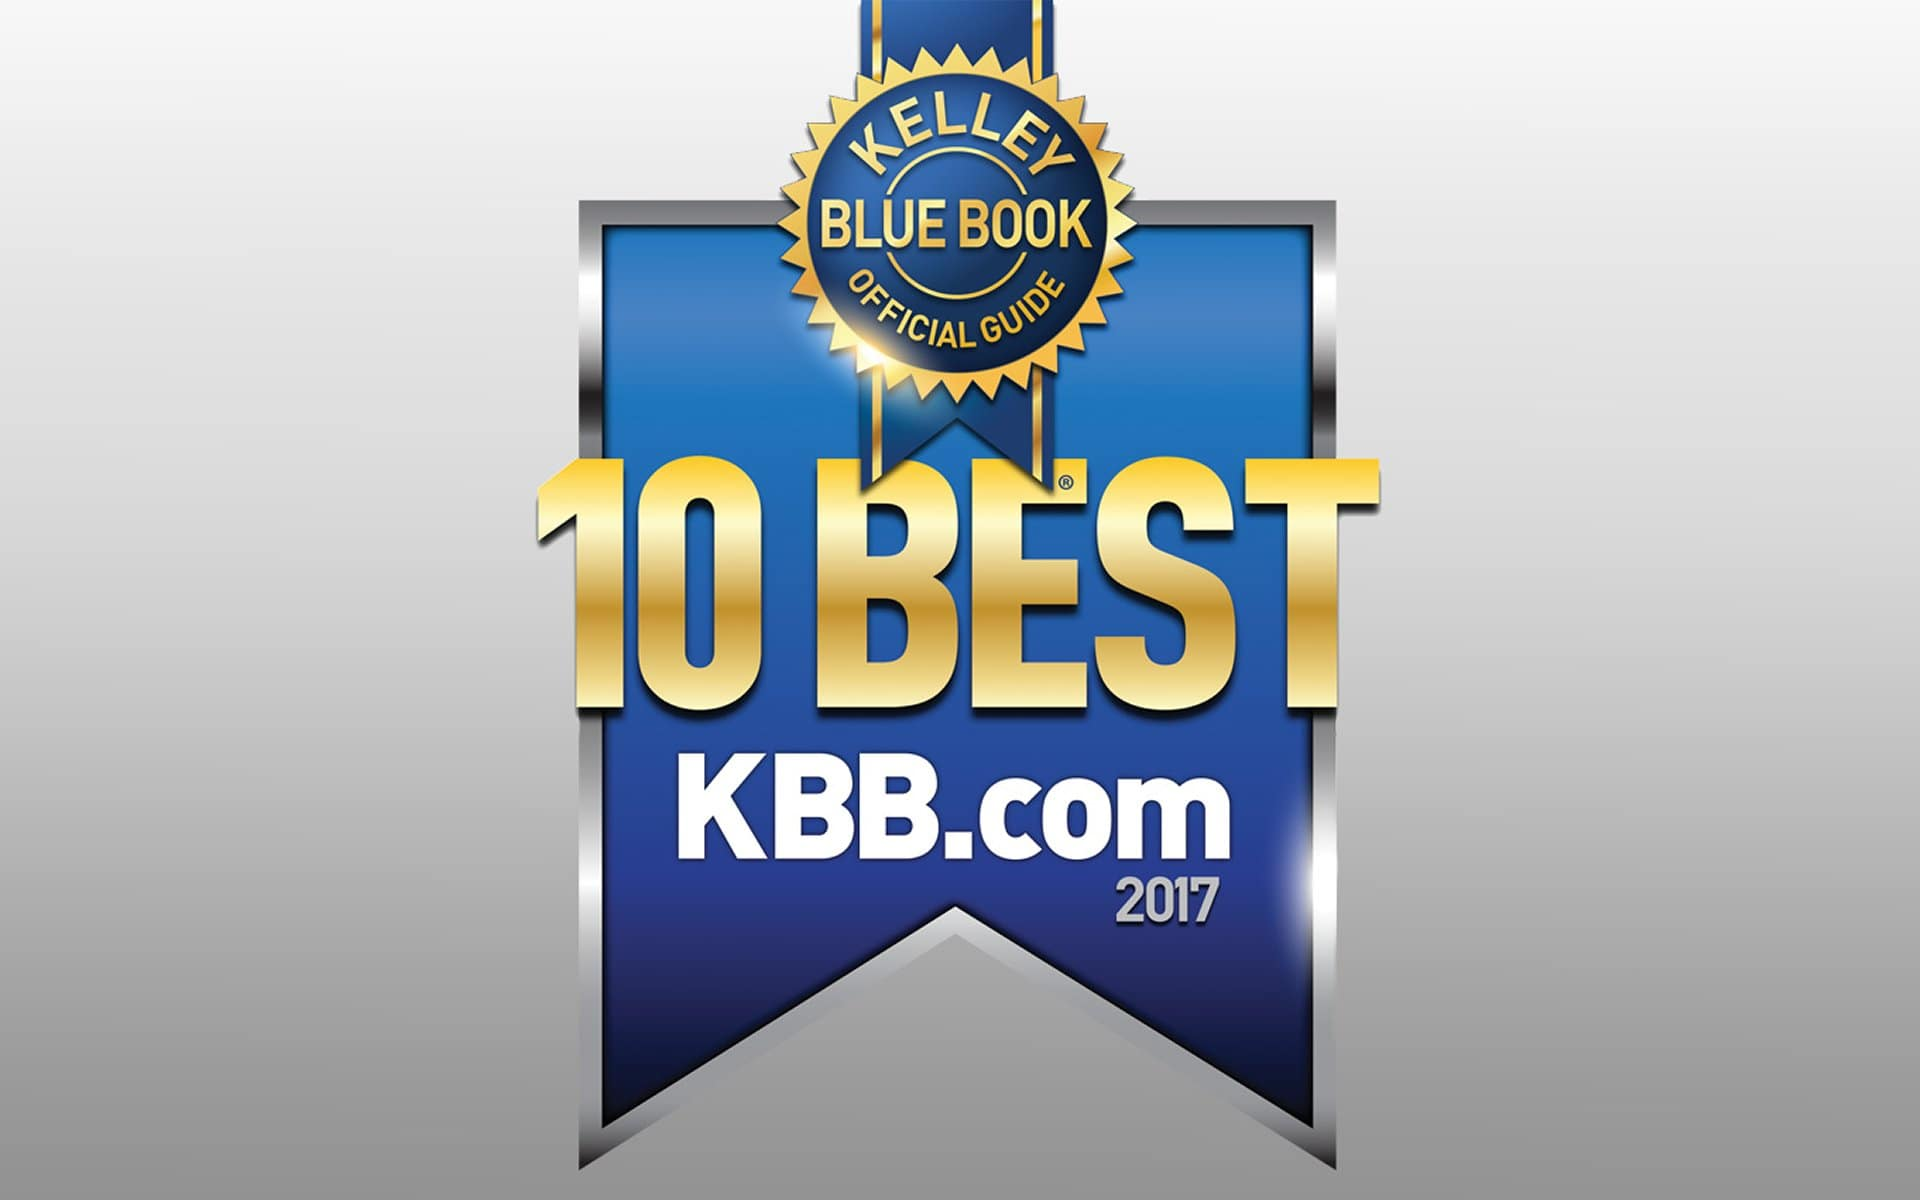 Kelley Blue Book 10 Best Winner Kia